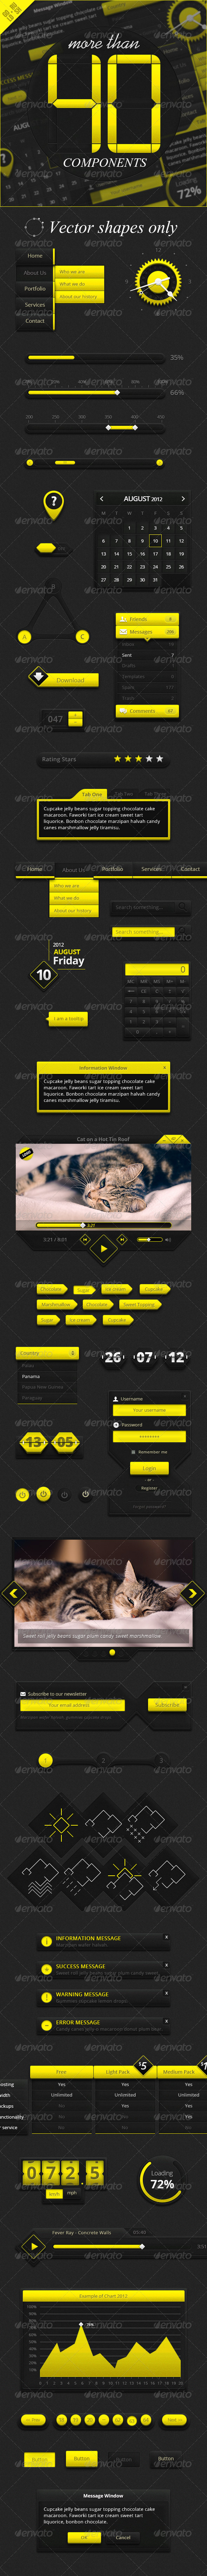 Gold Rush - User Interface Pack - User Interfaces Web Elements